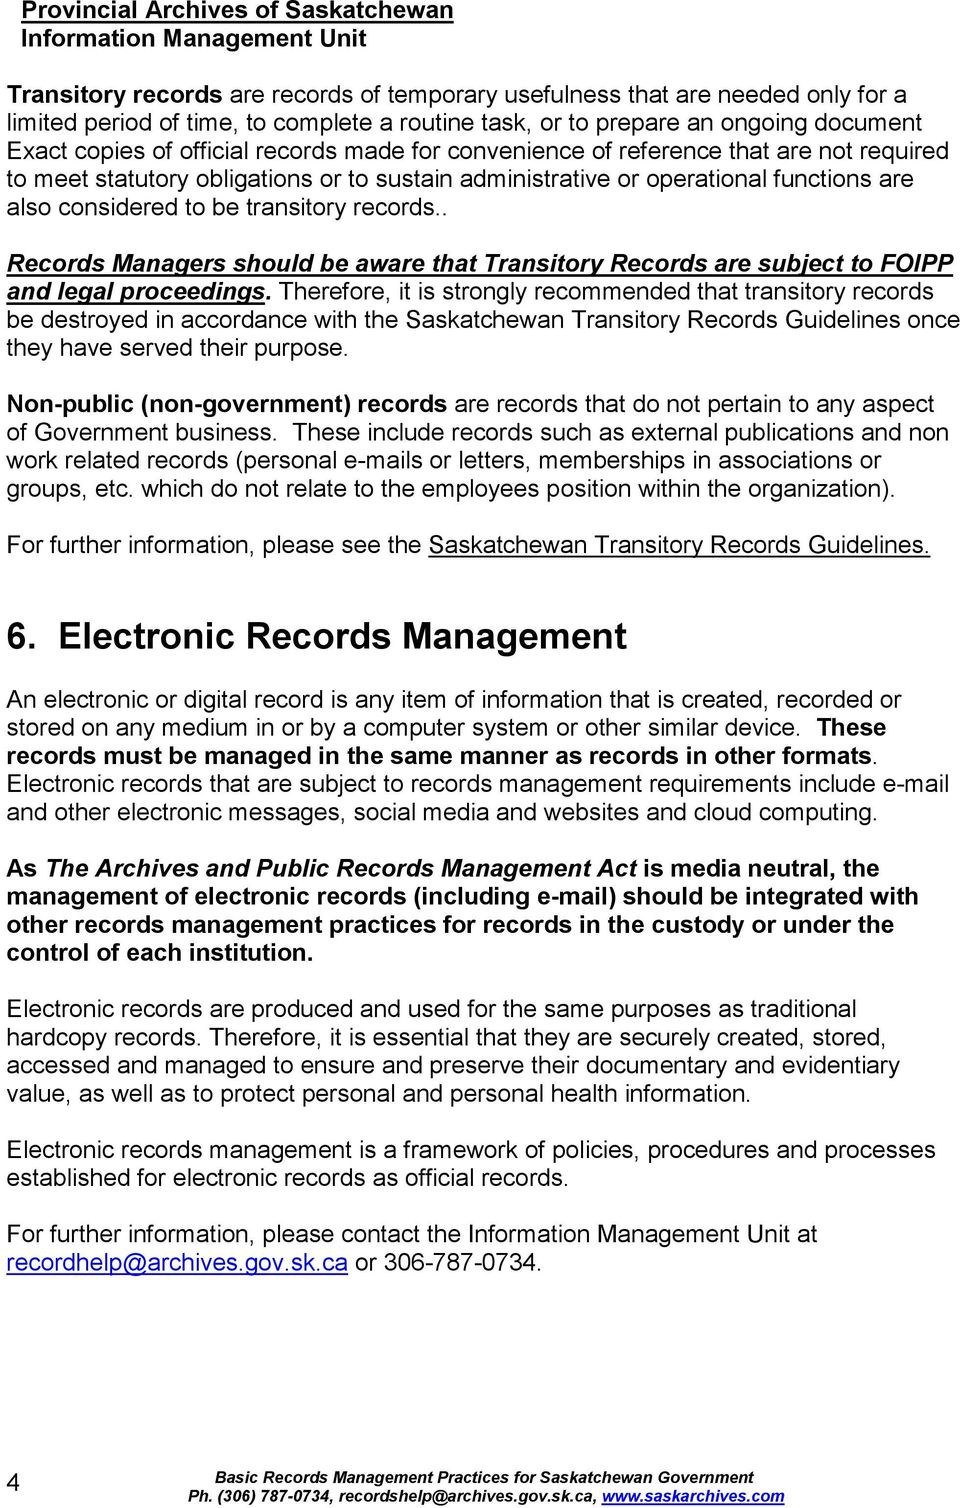 . Records Managers should be aware that Transitory Records are subject to FOIPP and legal proceedings.